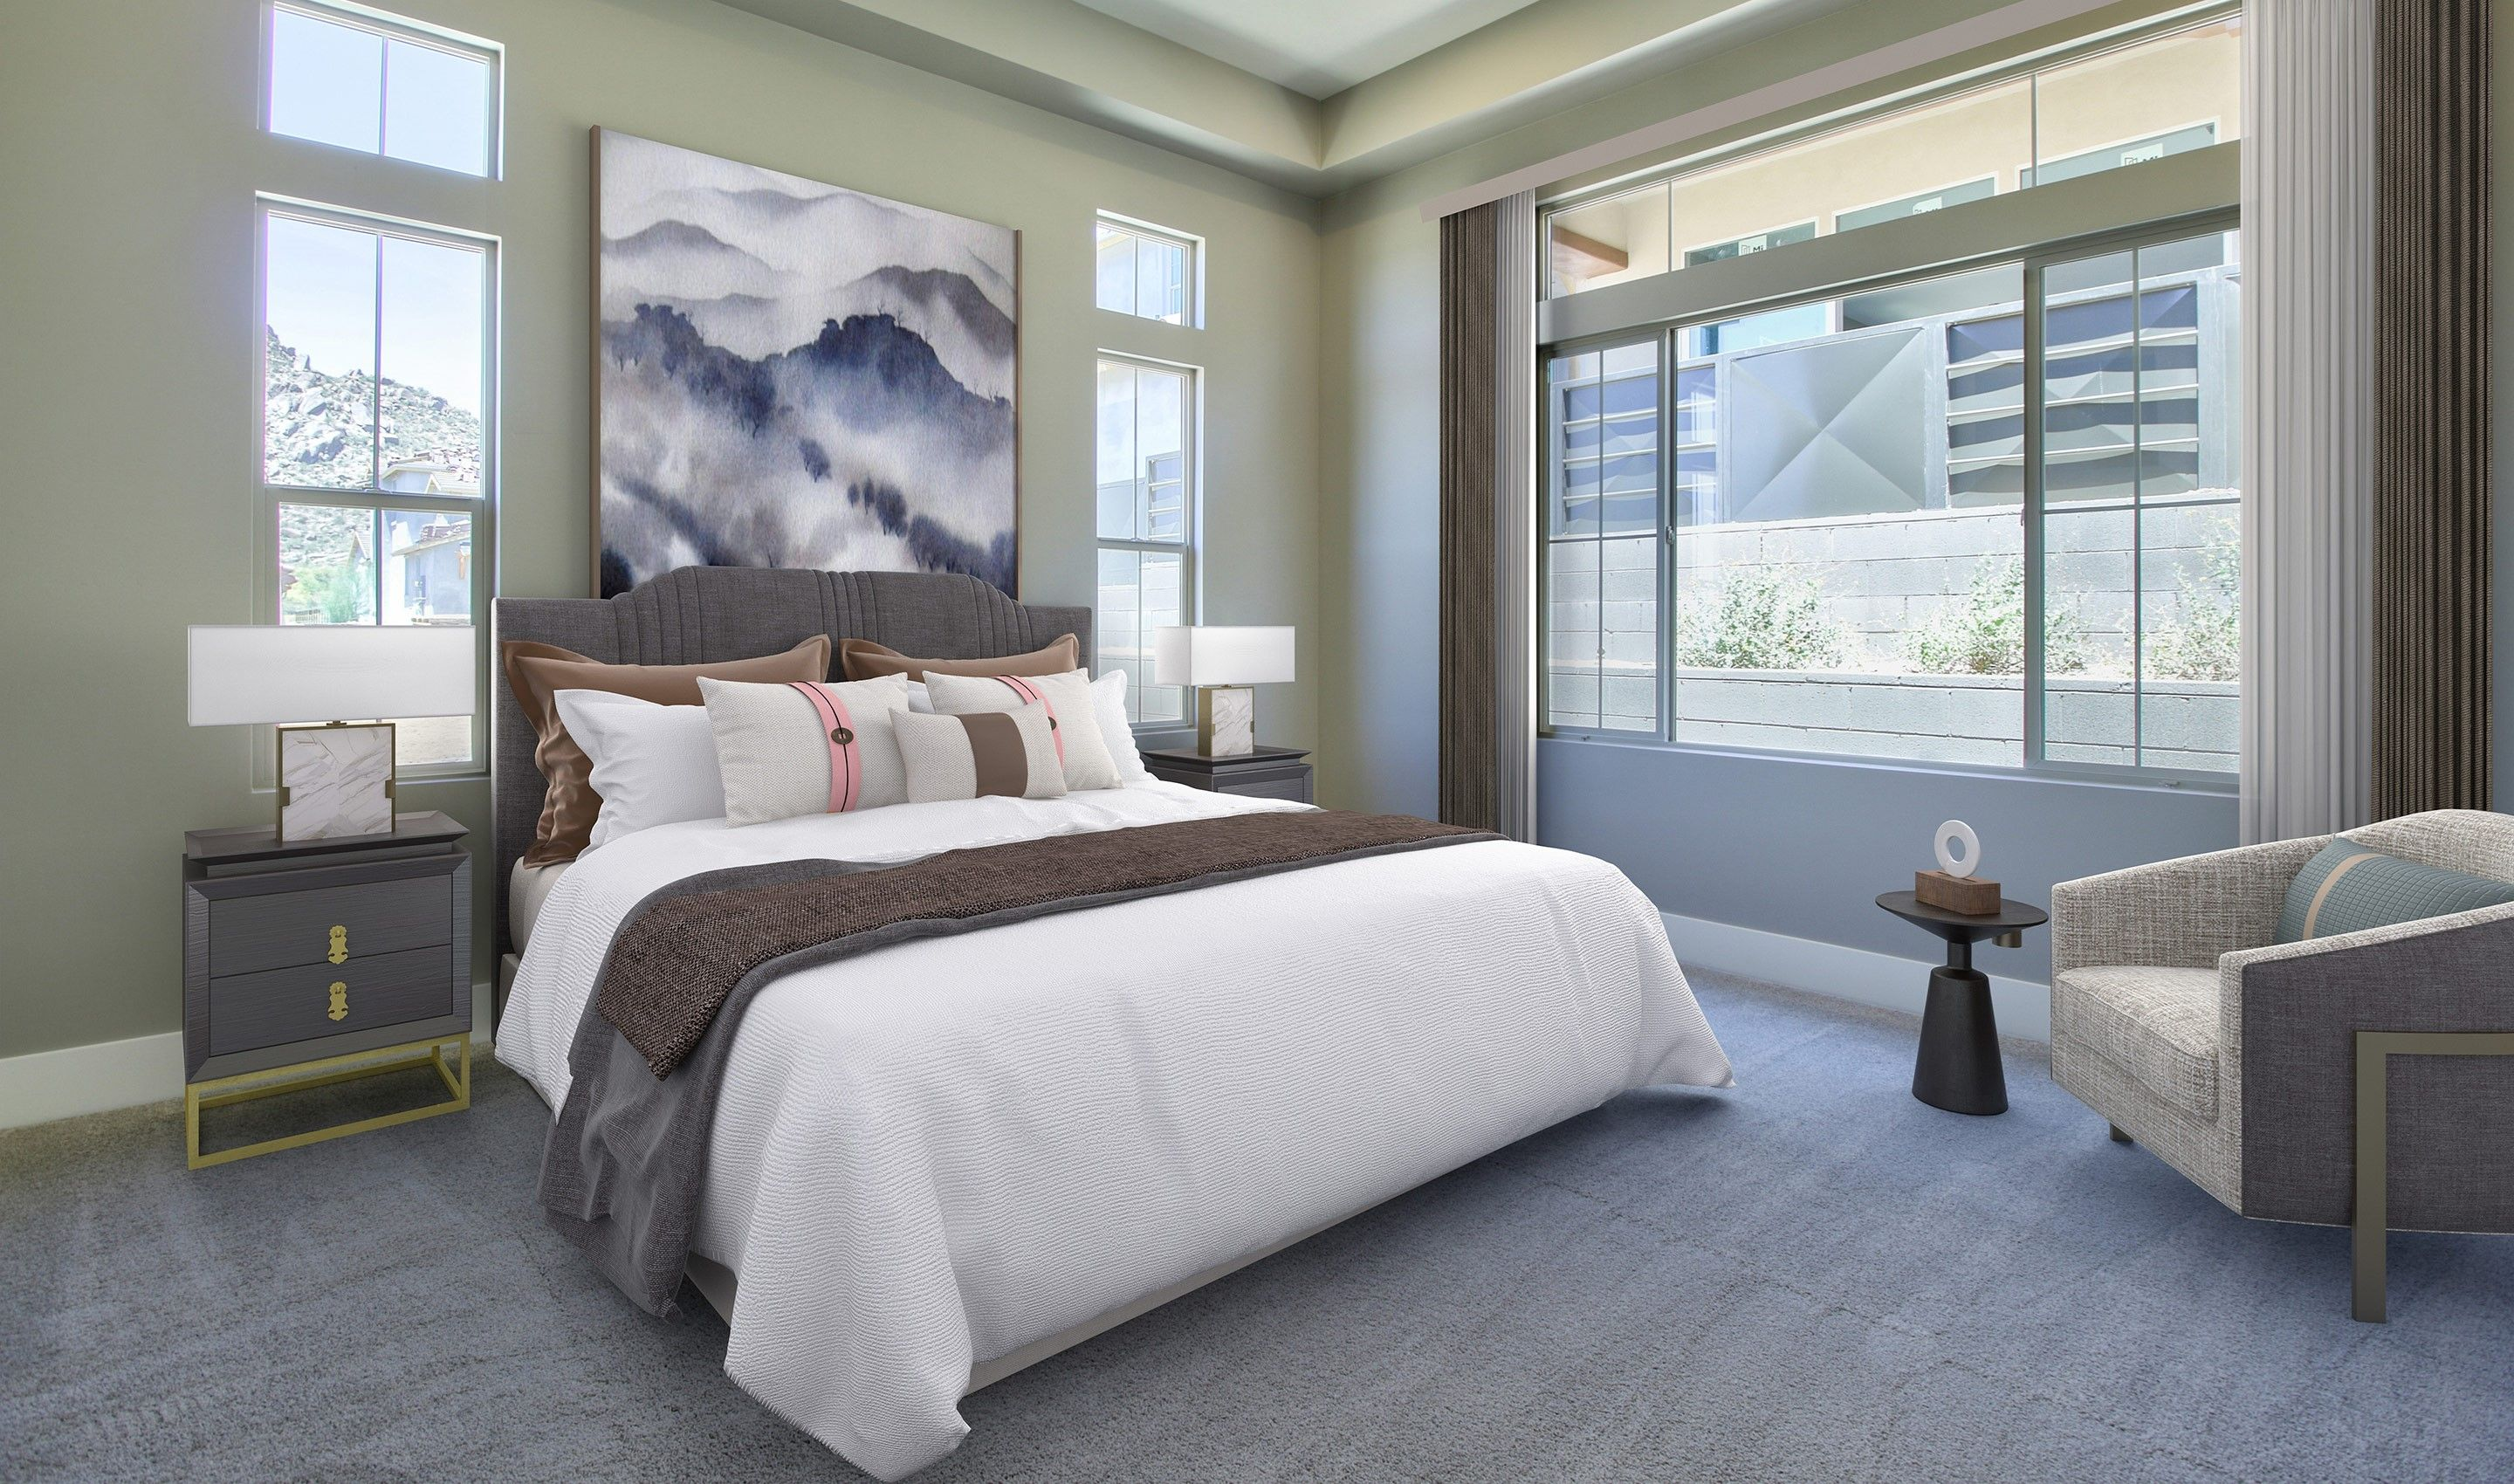 Bedroom-in-Capstone-at-Summit II at Silverstone-in-Scottsdale